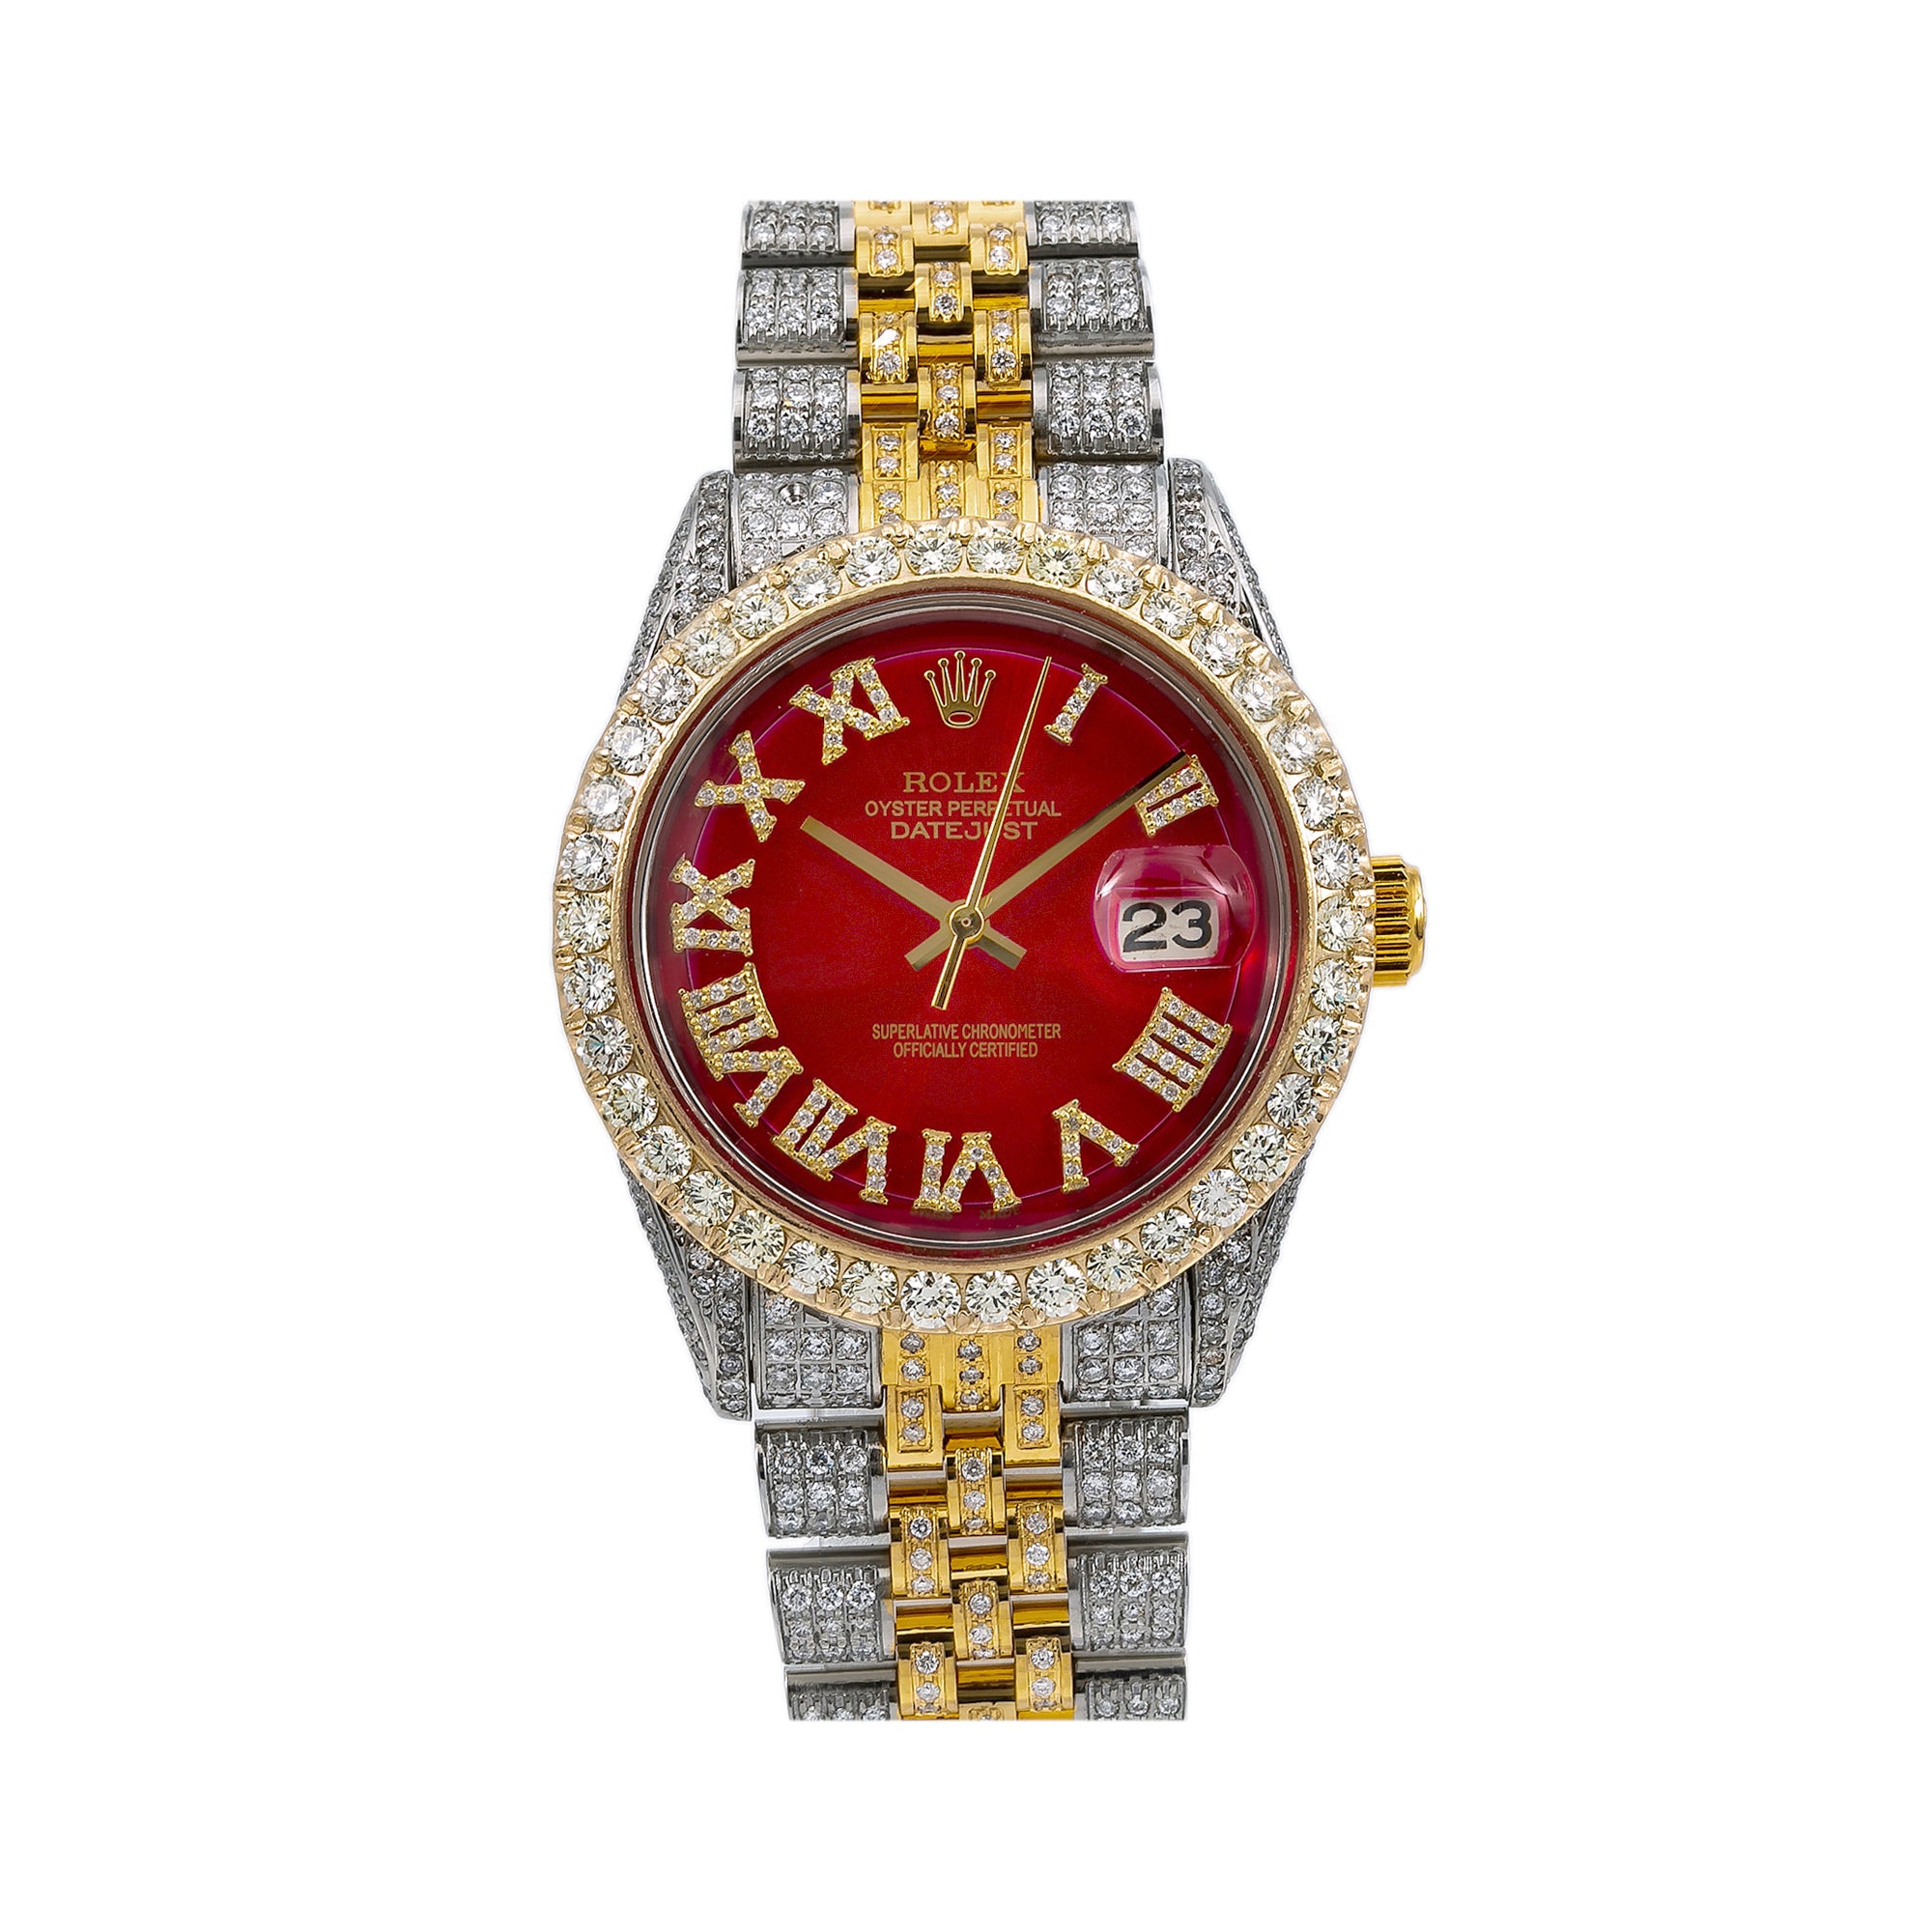 Rolex Datejust Diamond Watch, 1601 36mm, Red Diamond Dial With 8.25 CT Diamonds